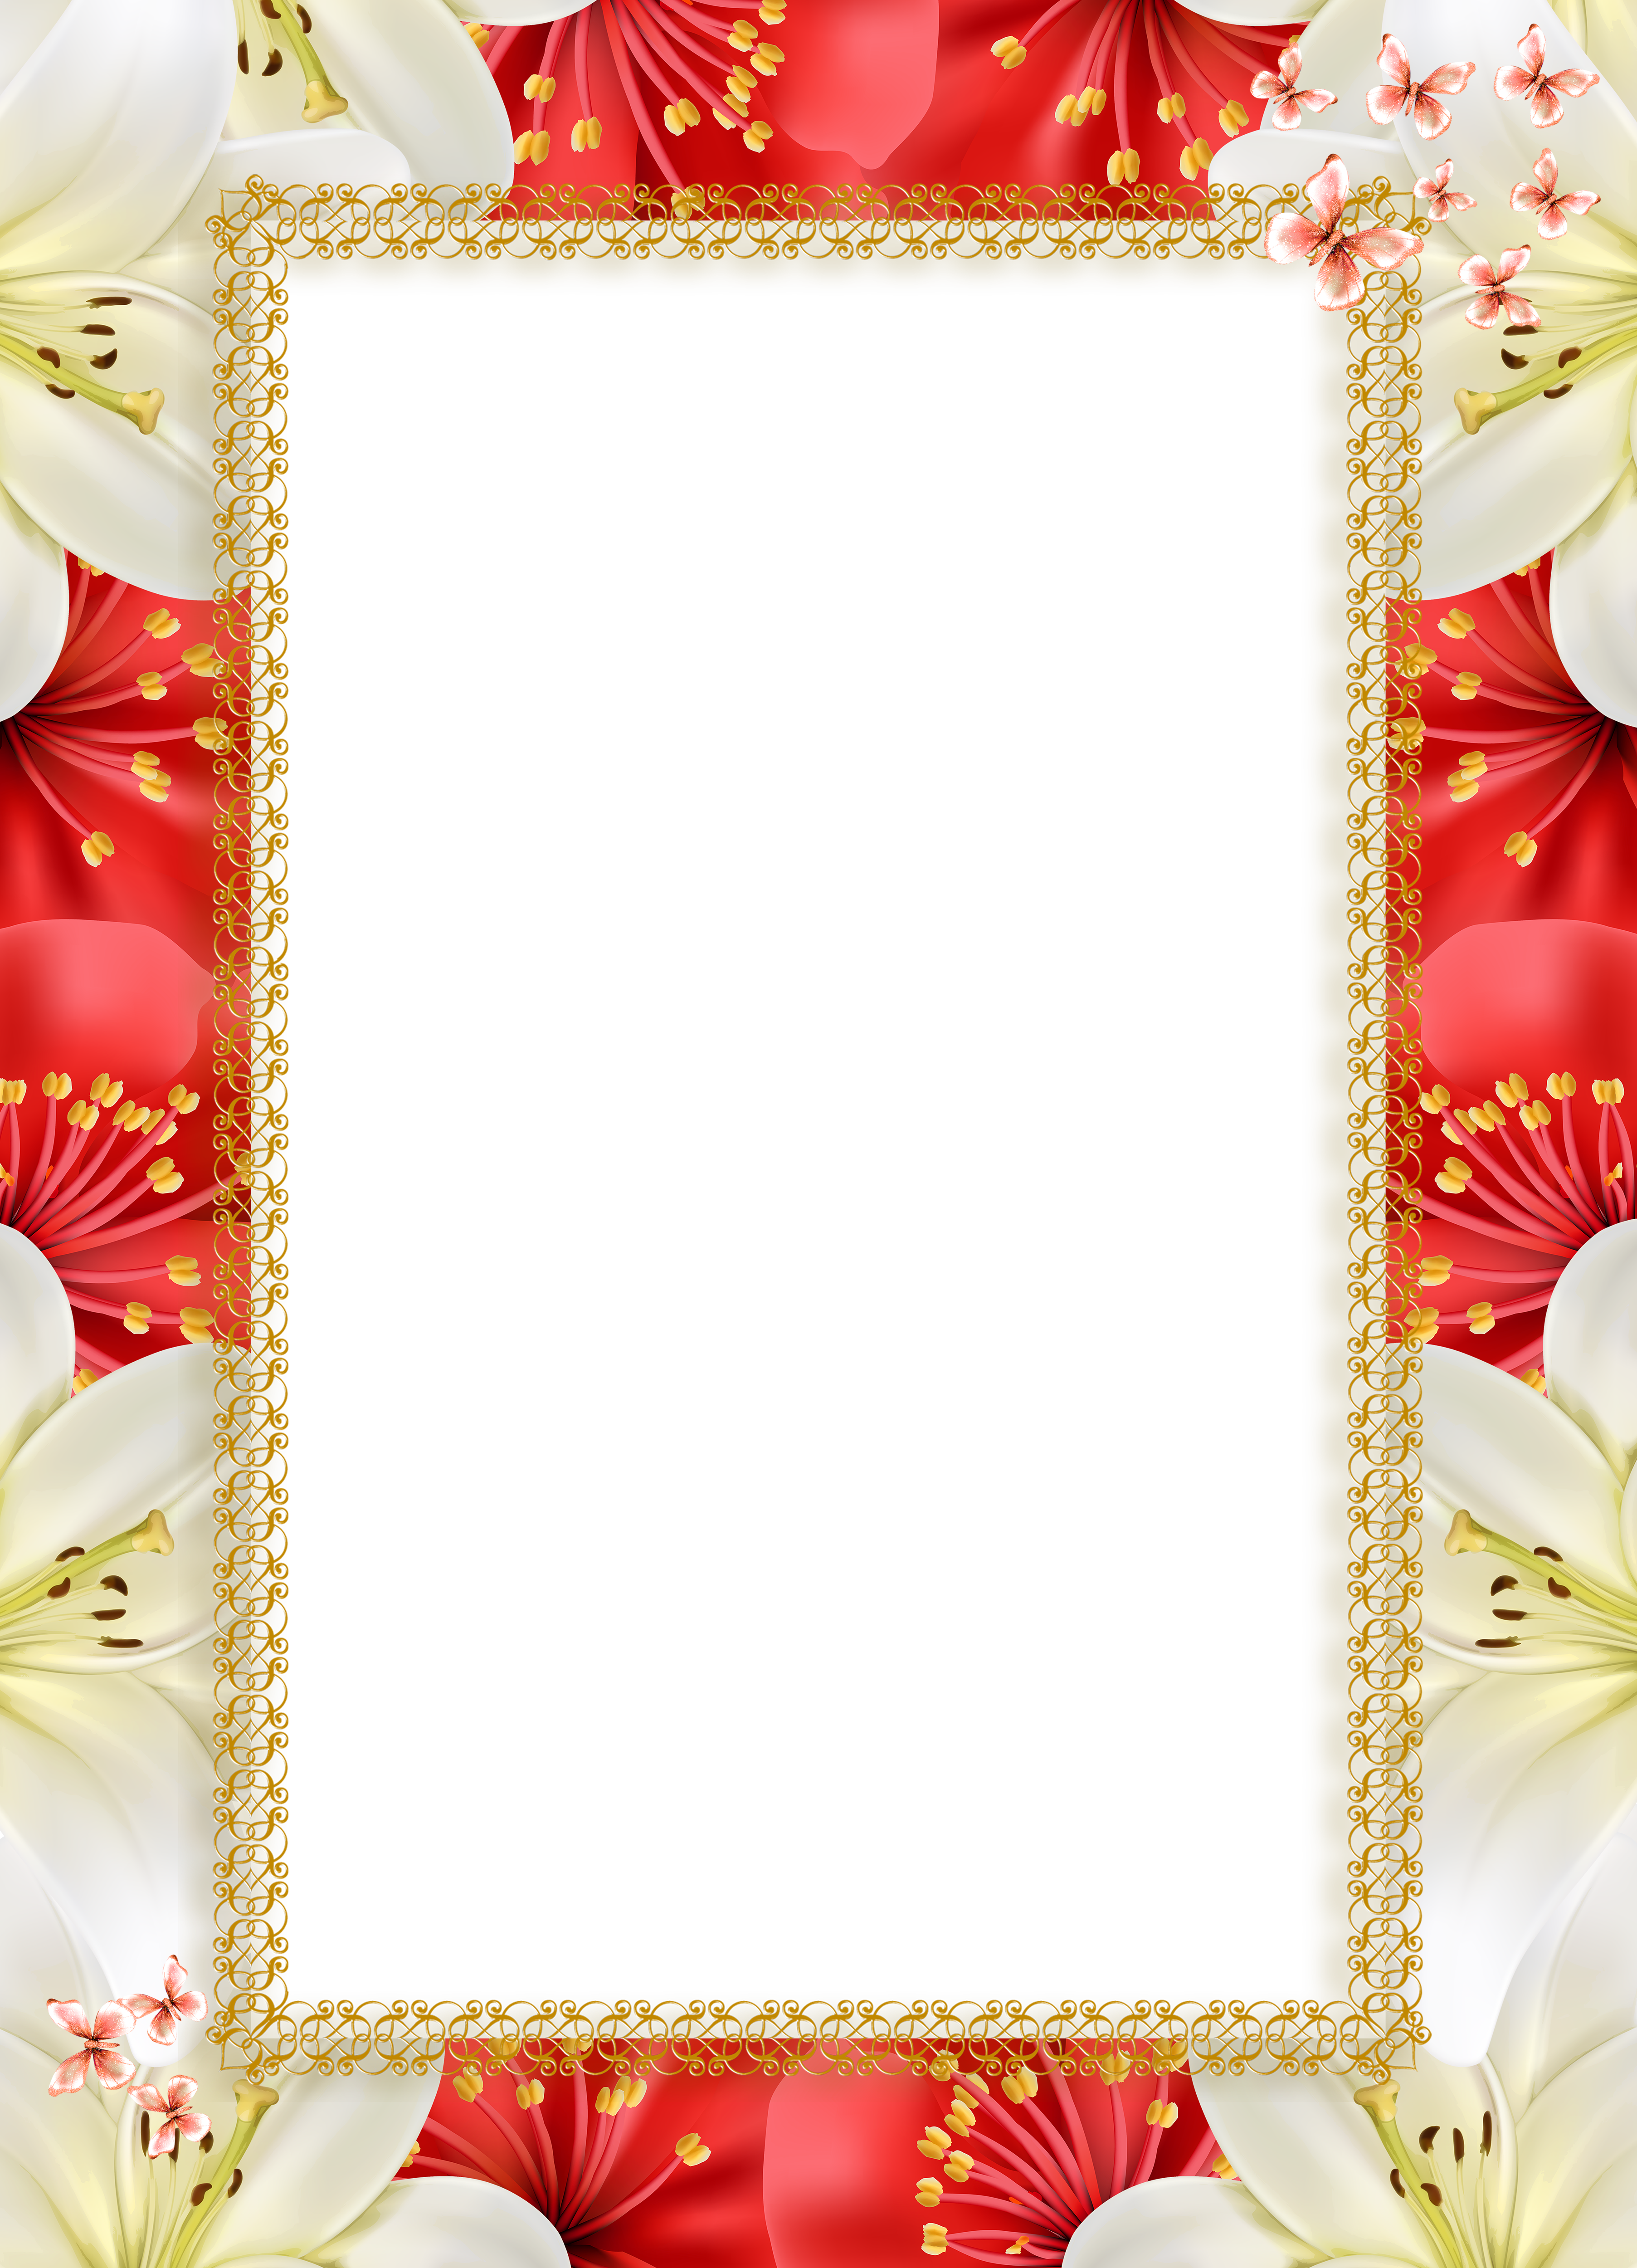 Png picture frame. Red white flowers transparent